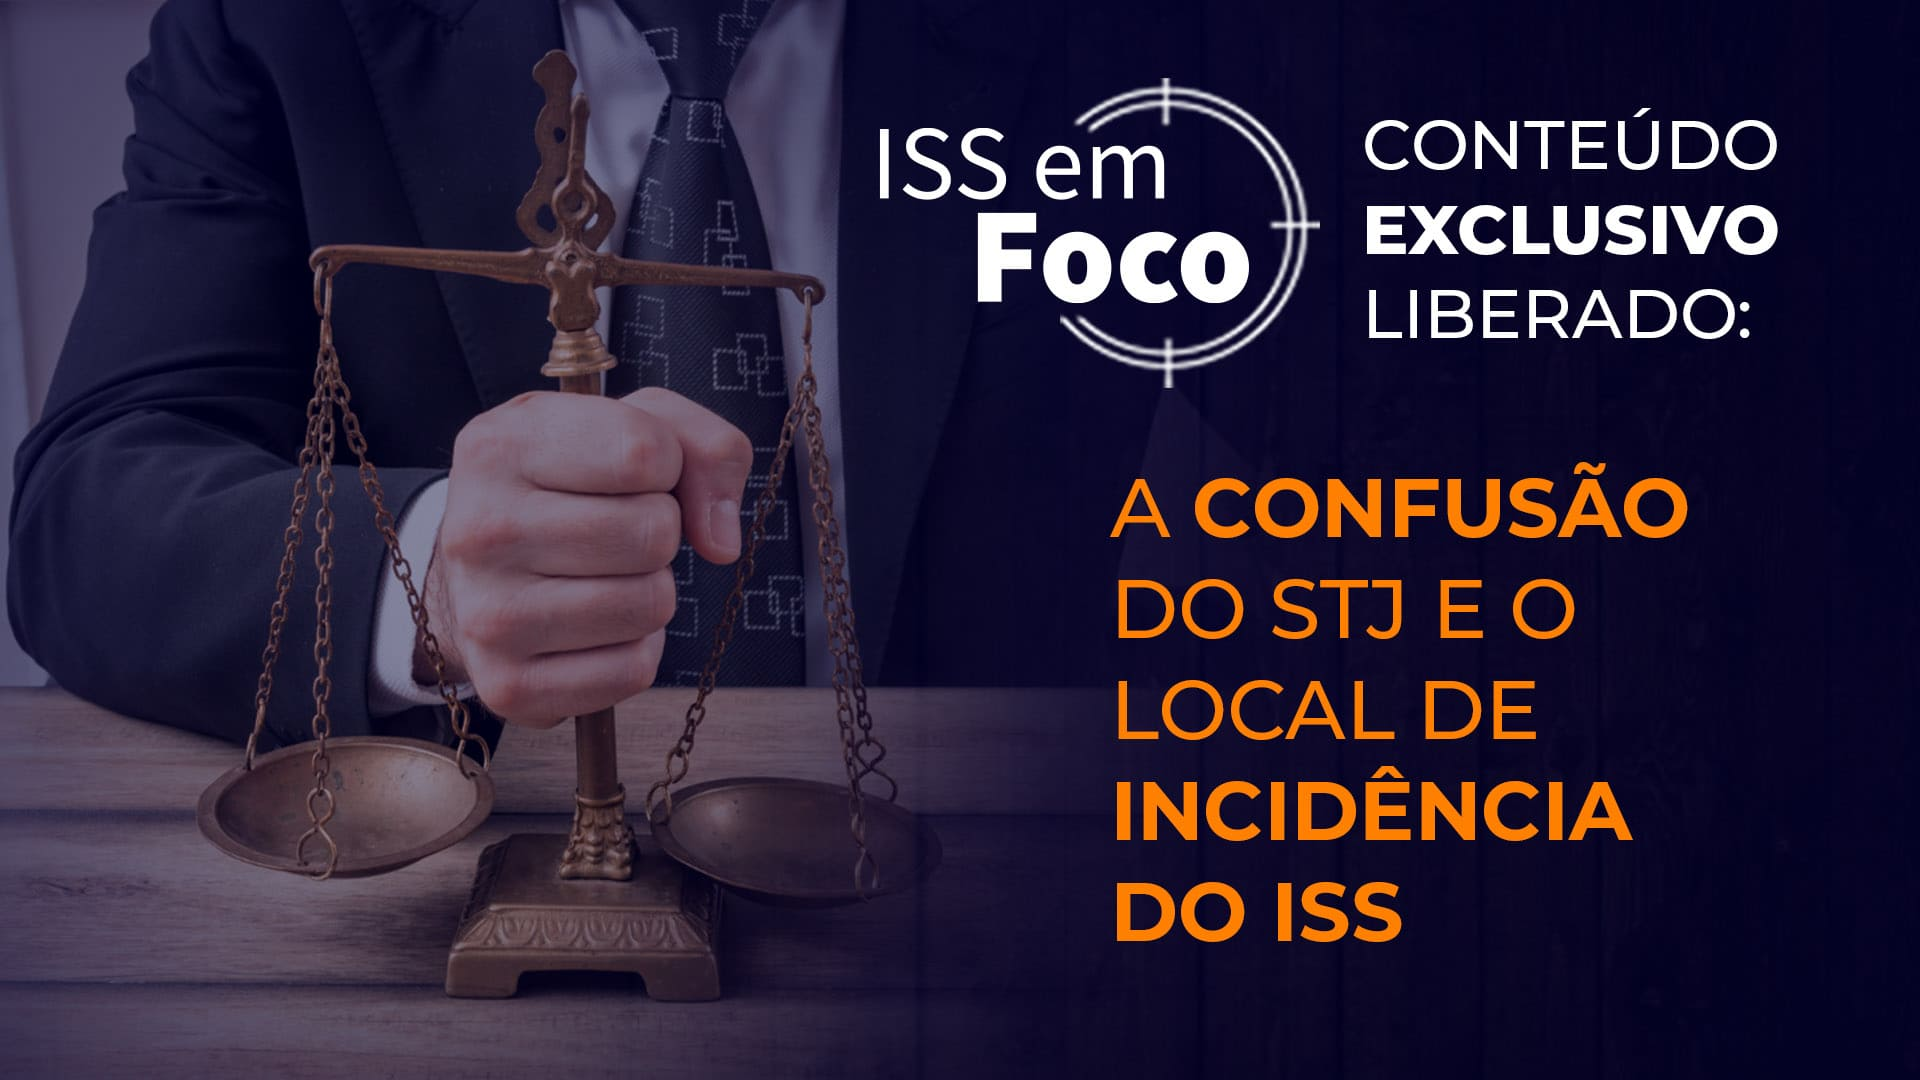 a-confusao-do-stj-e-o-local-de-incidencia-do-iss